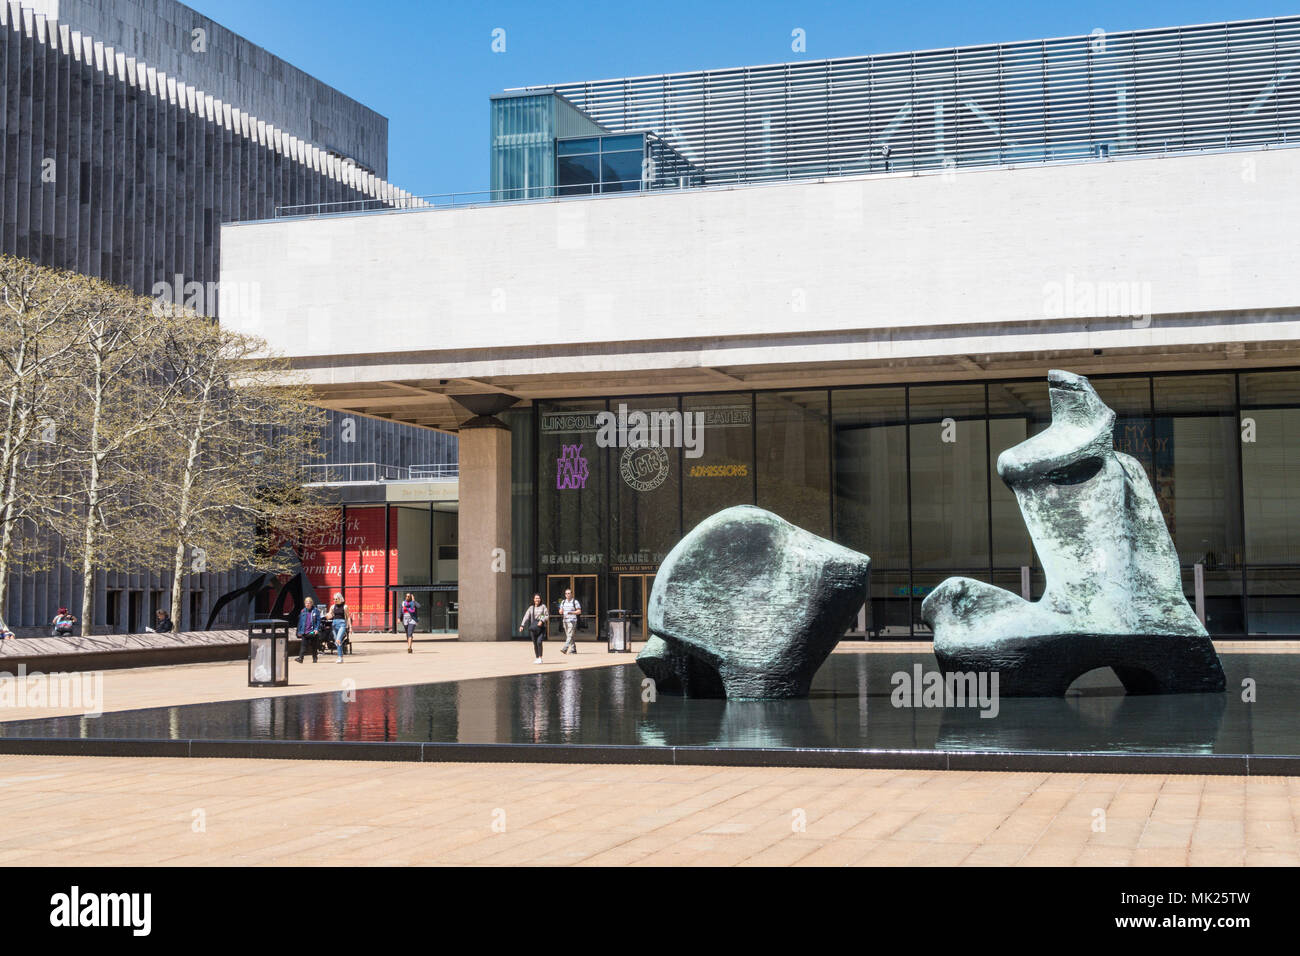 Hearst Plaza at Lincoln Center for the performing arts, NYC, USA - Stock Image